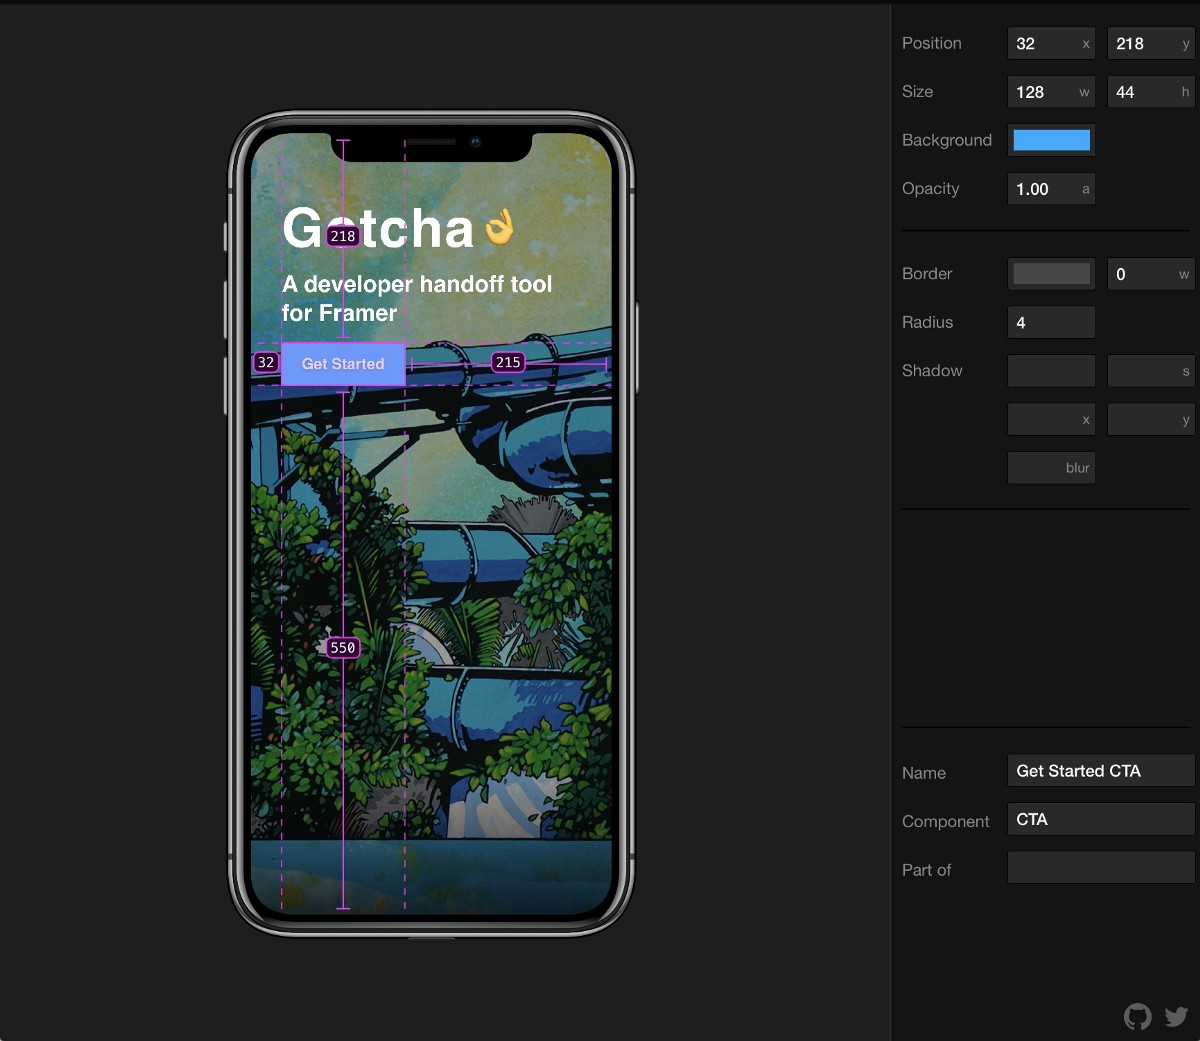 Introducing Gotcha for Framer